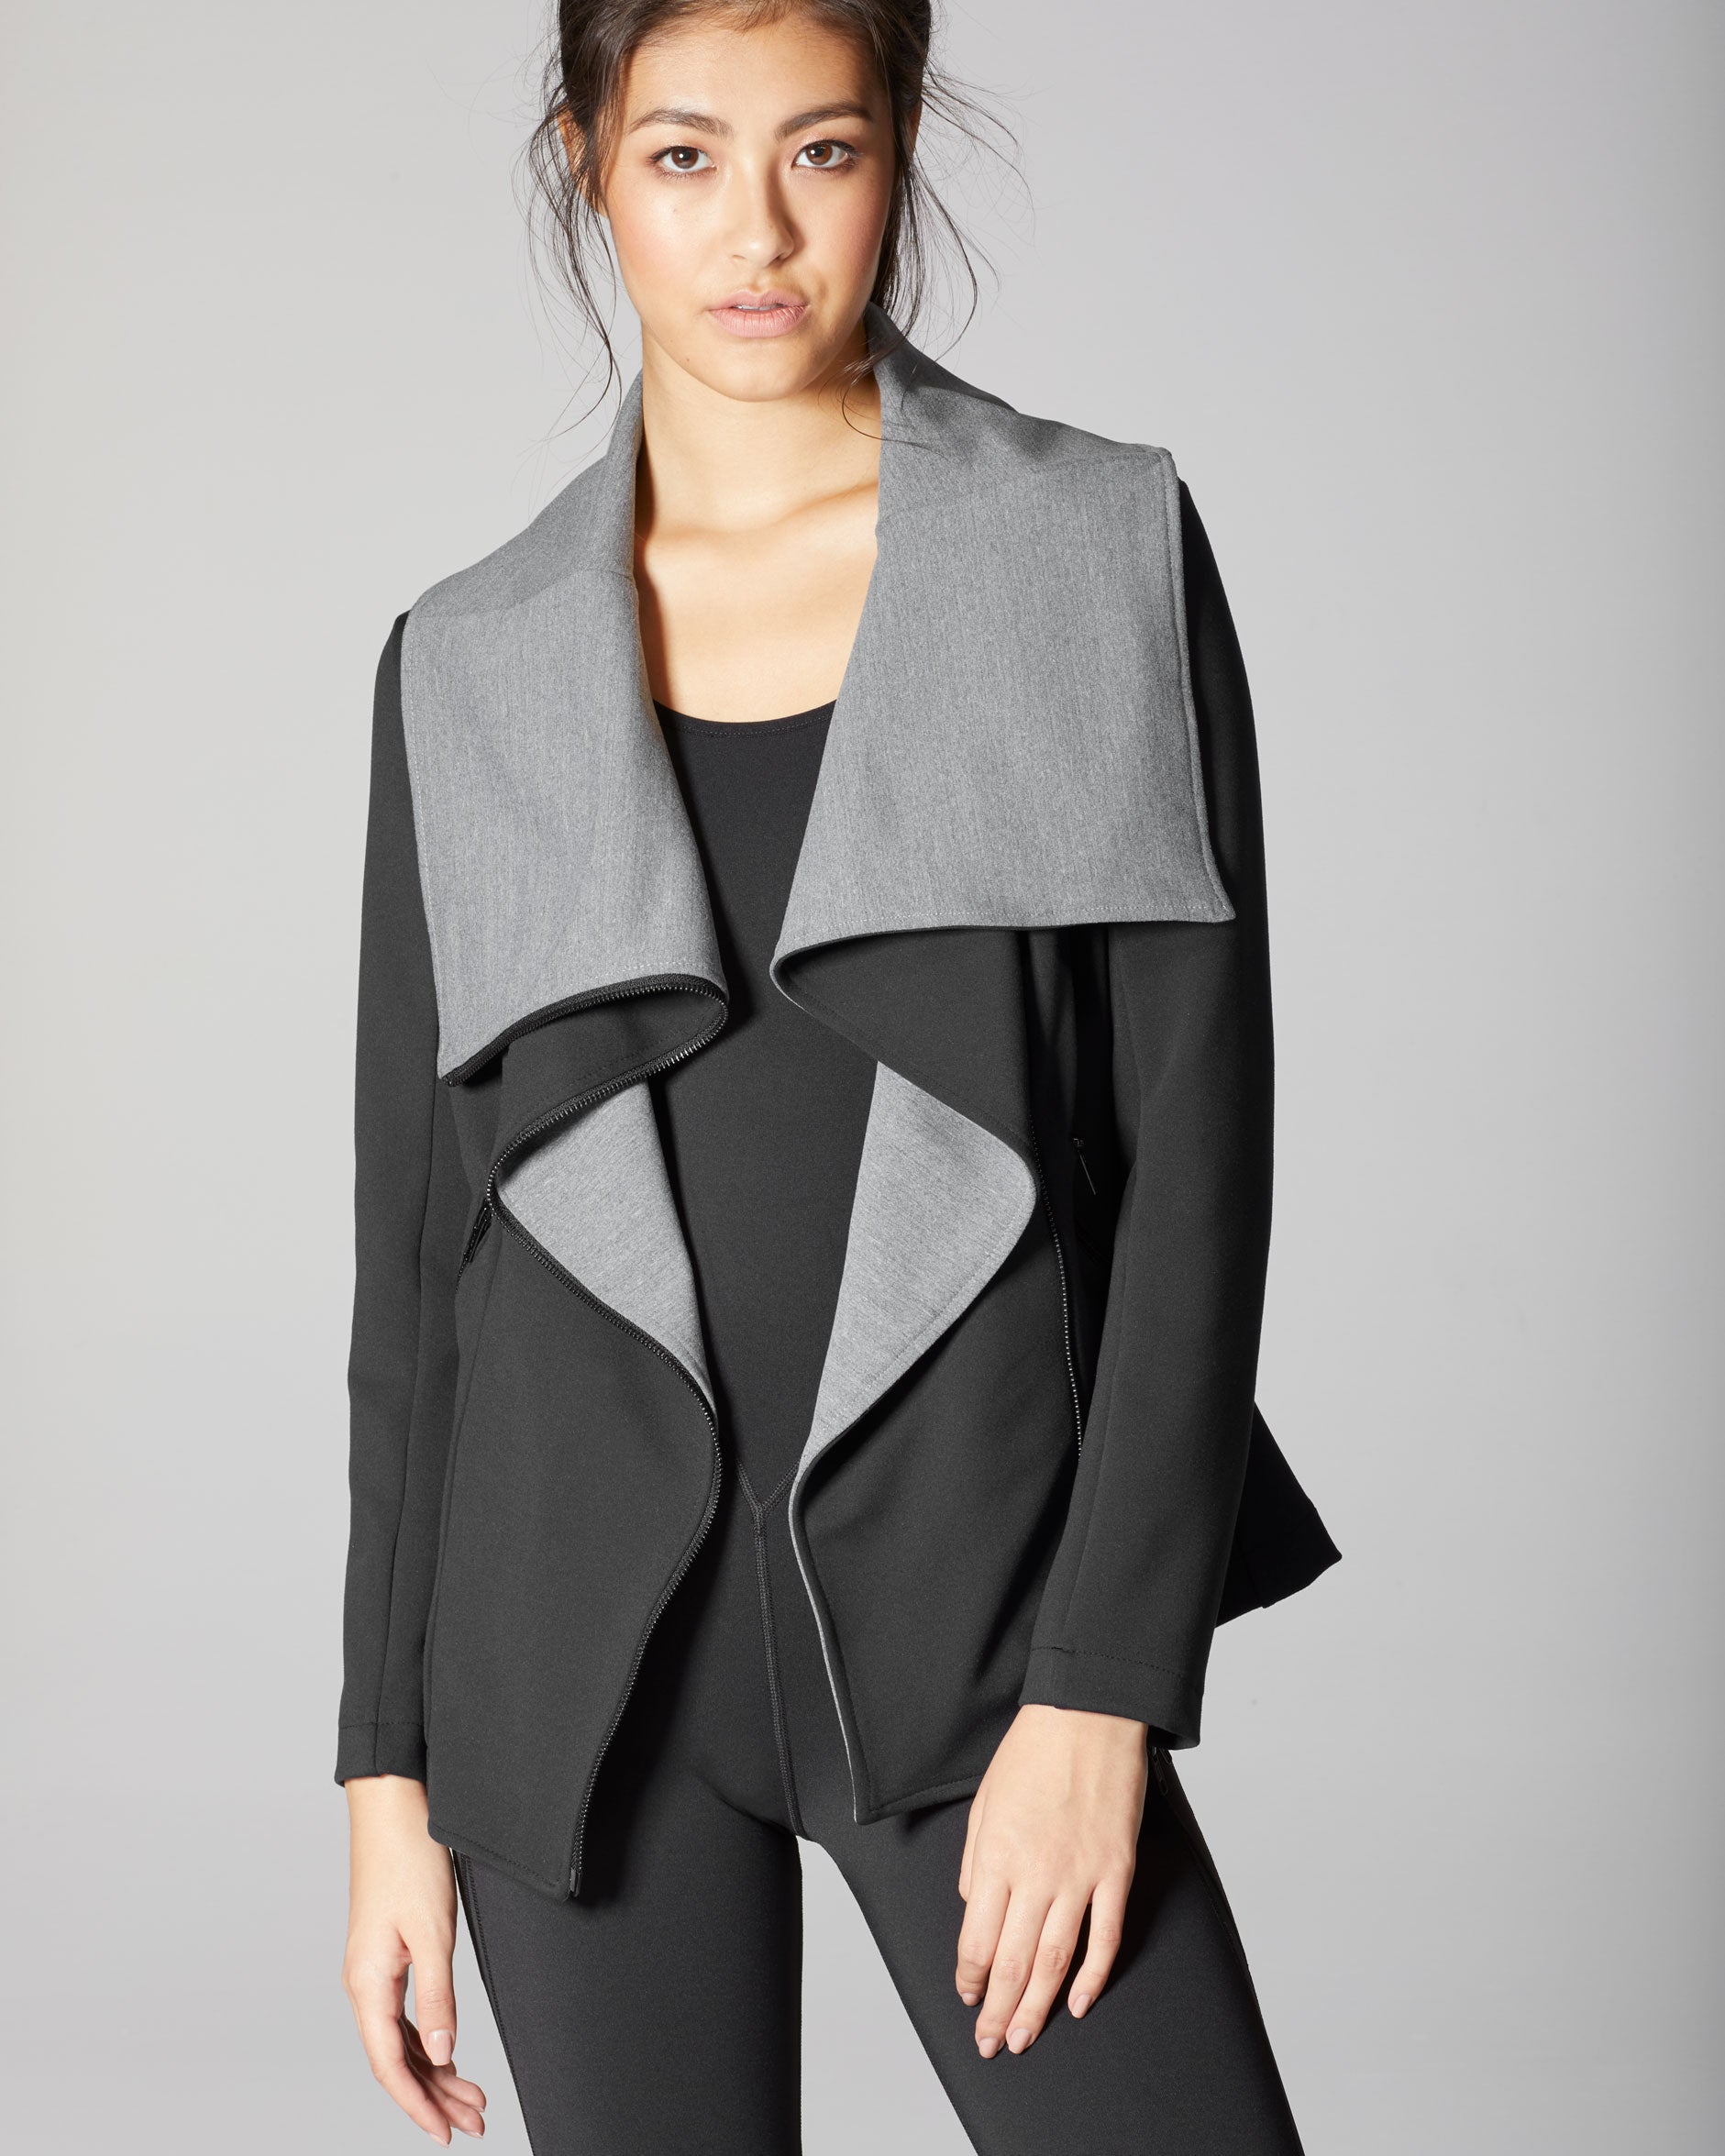 lotus-jacket-grey-black